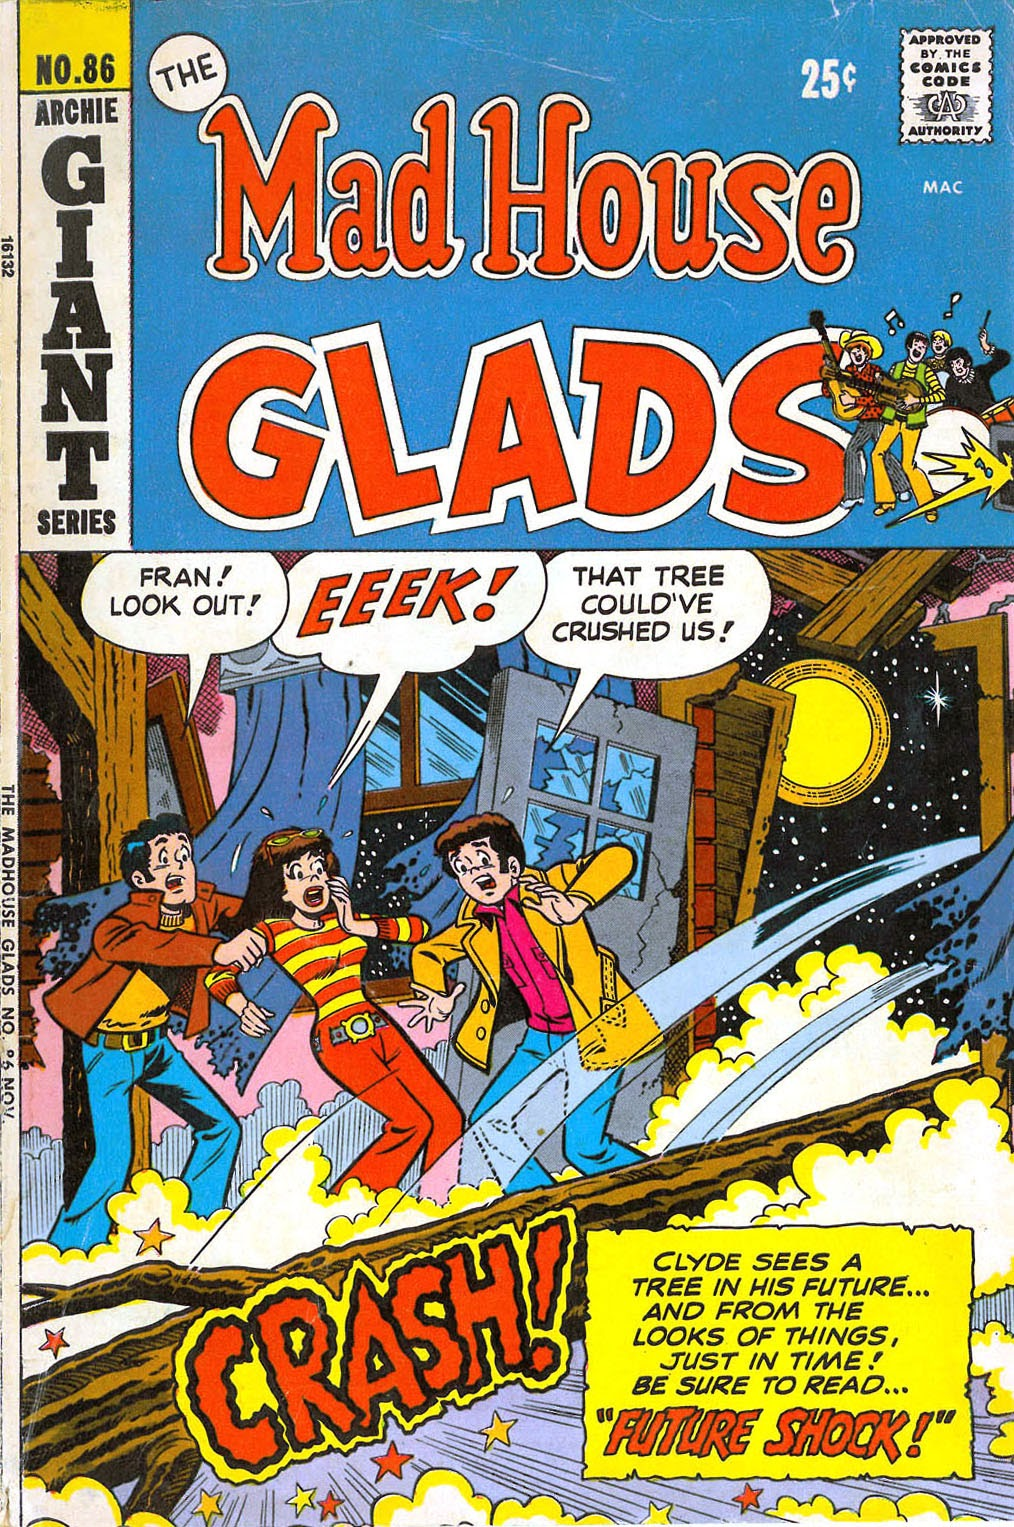 Read online The Mad House Glads comic -  Issue #86 - 1